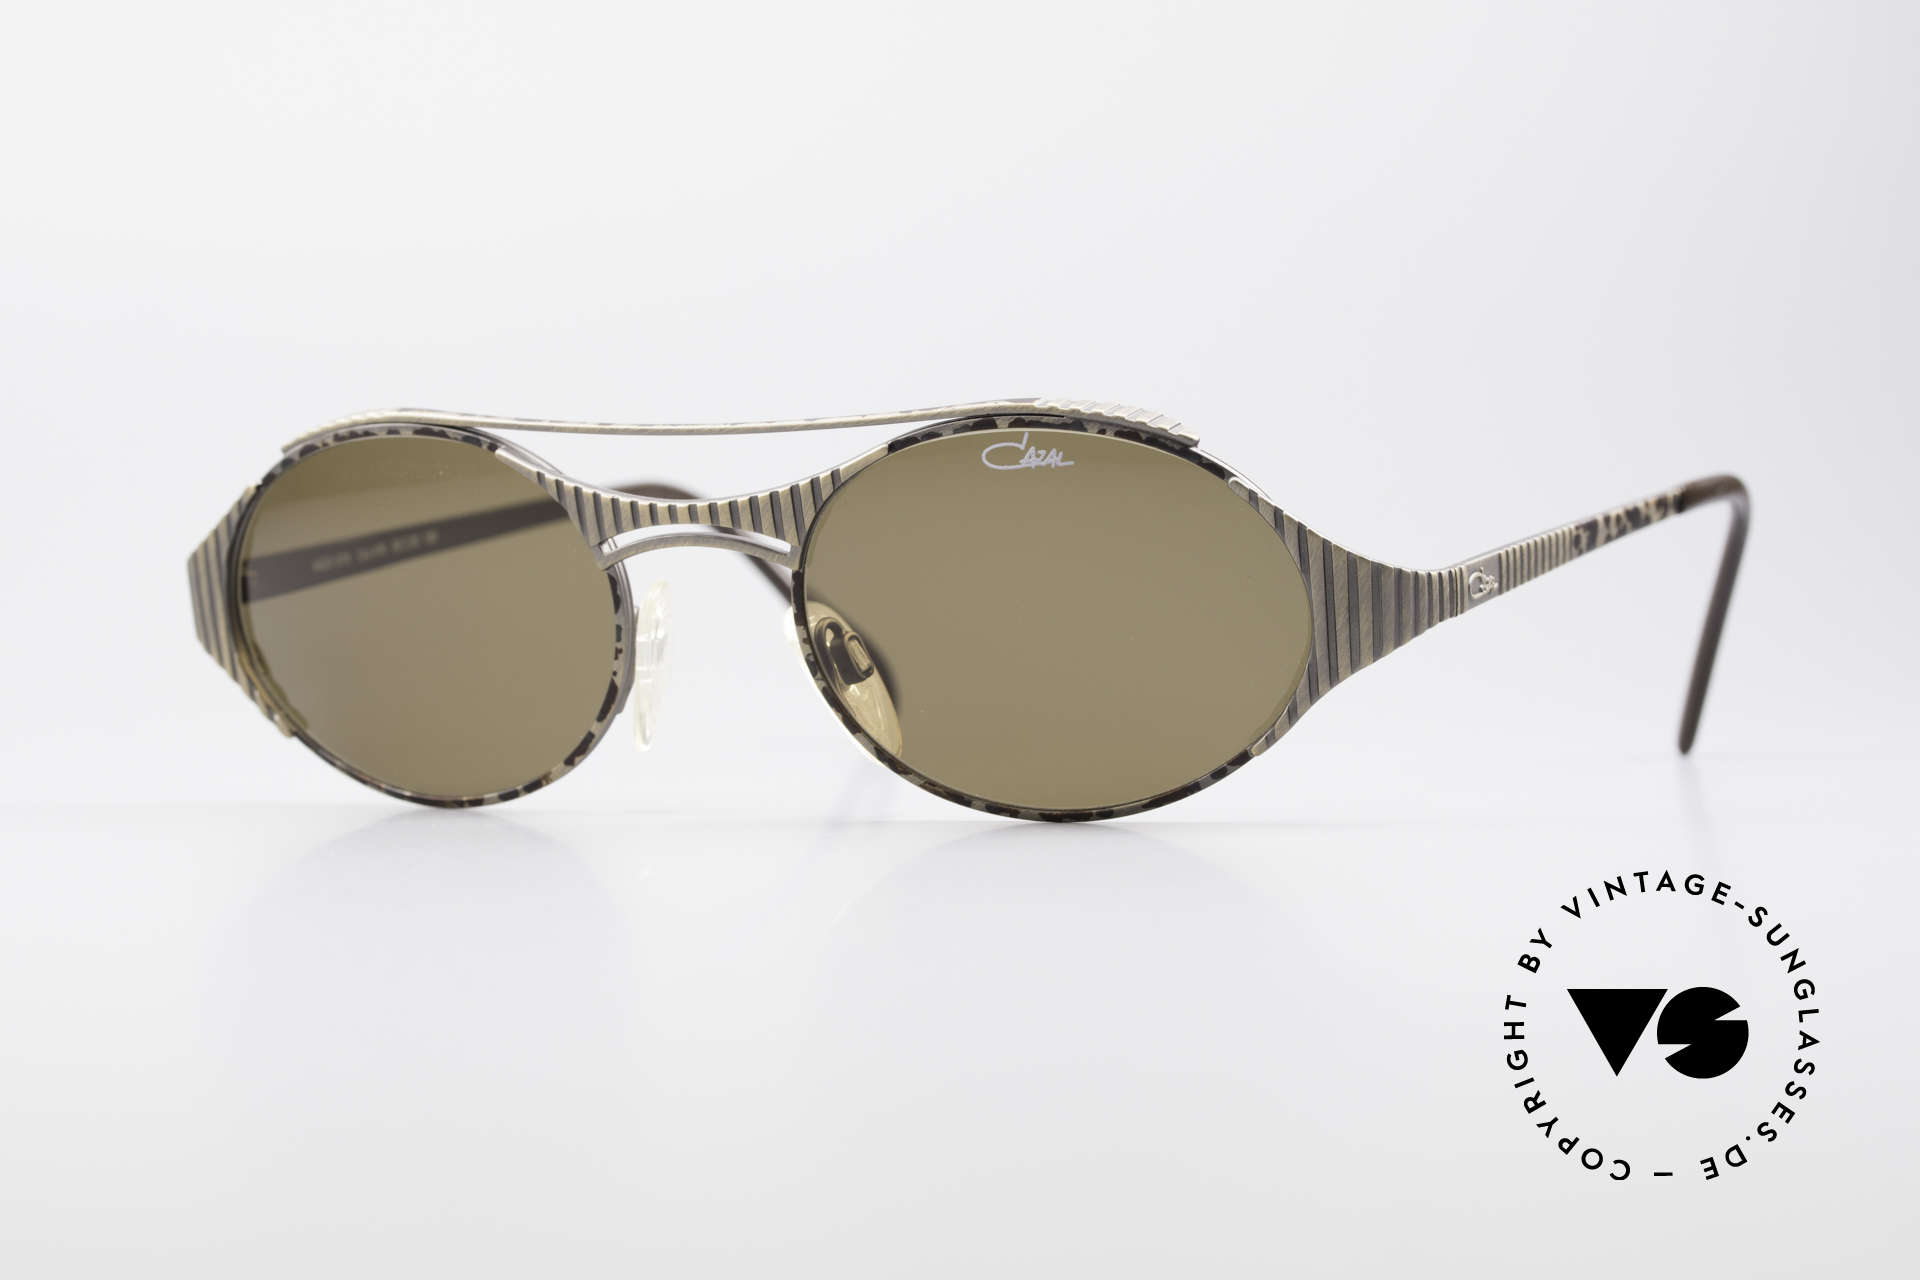 Cazal 978 Vintage Designer Sunglasses, stunning CAZAL designer shades from the late 90's, Made for Men and Women